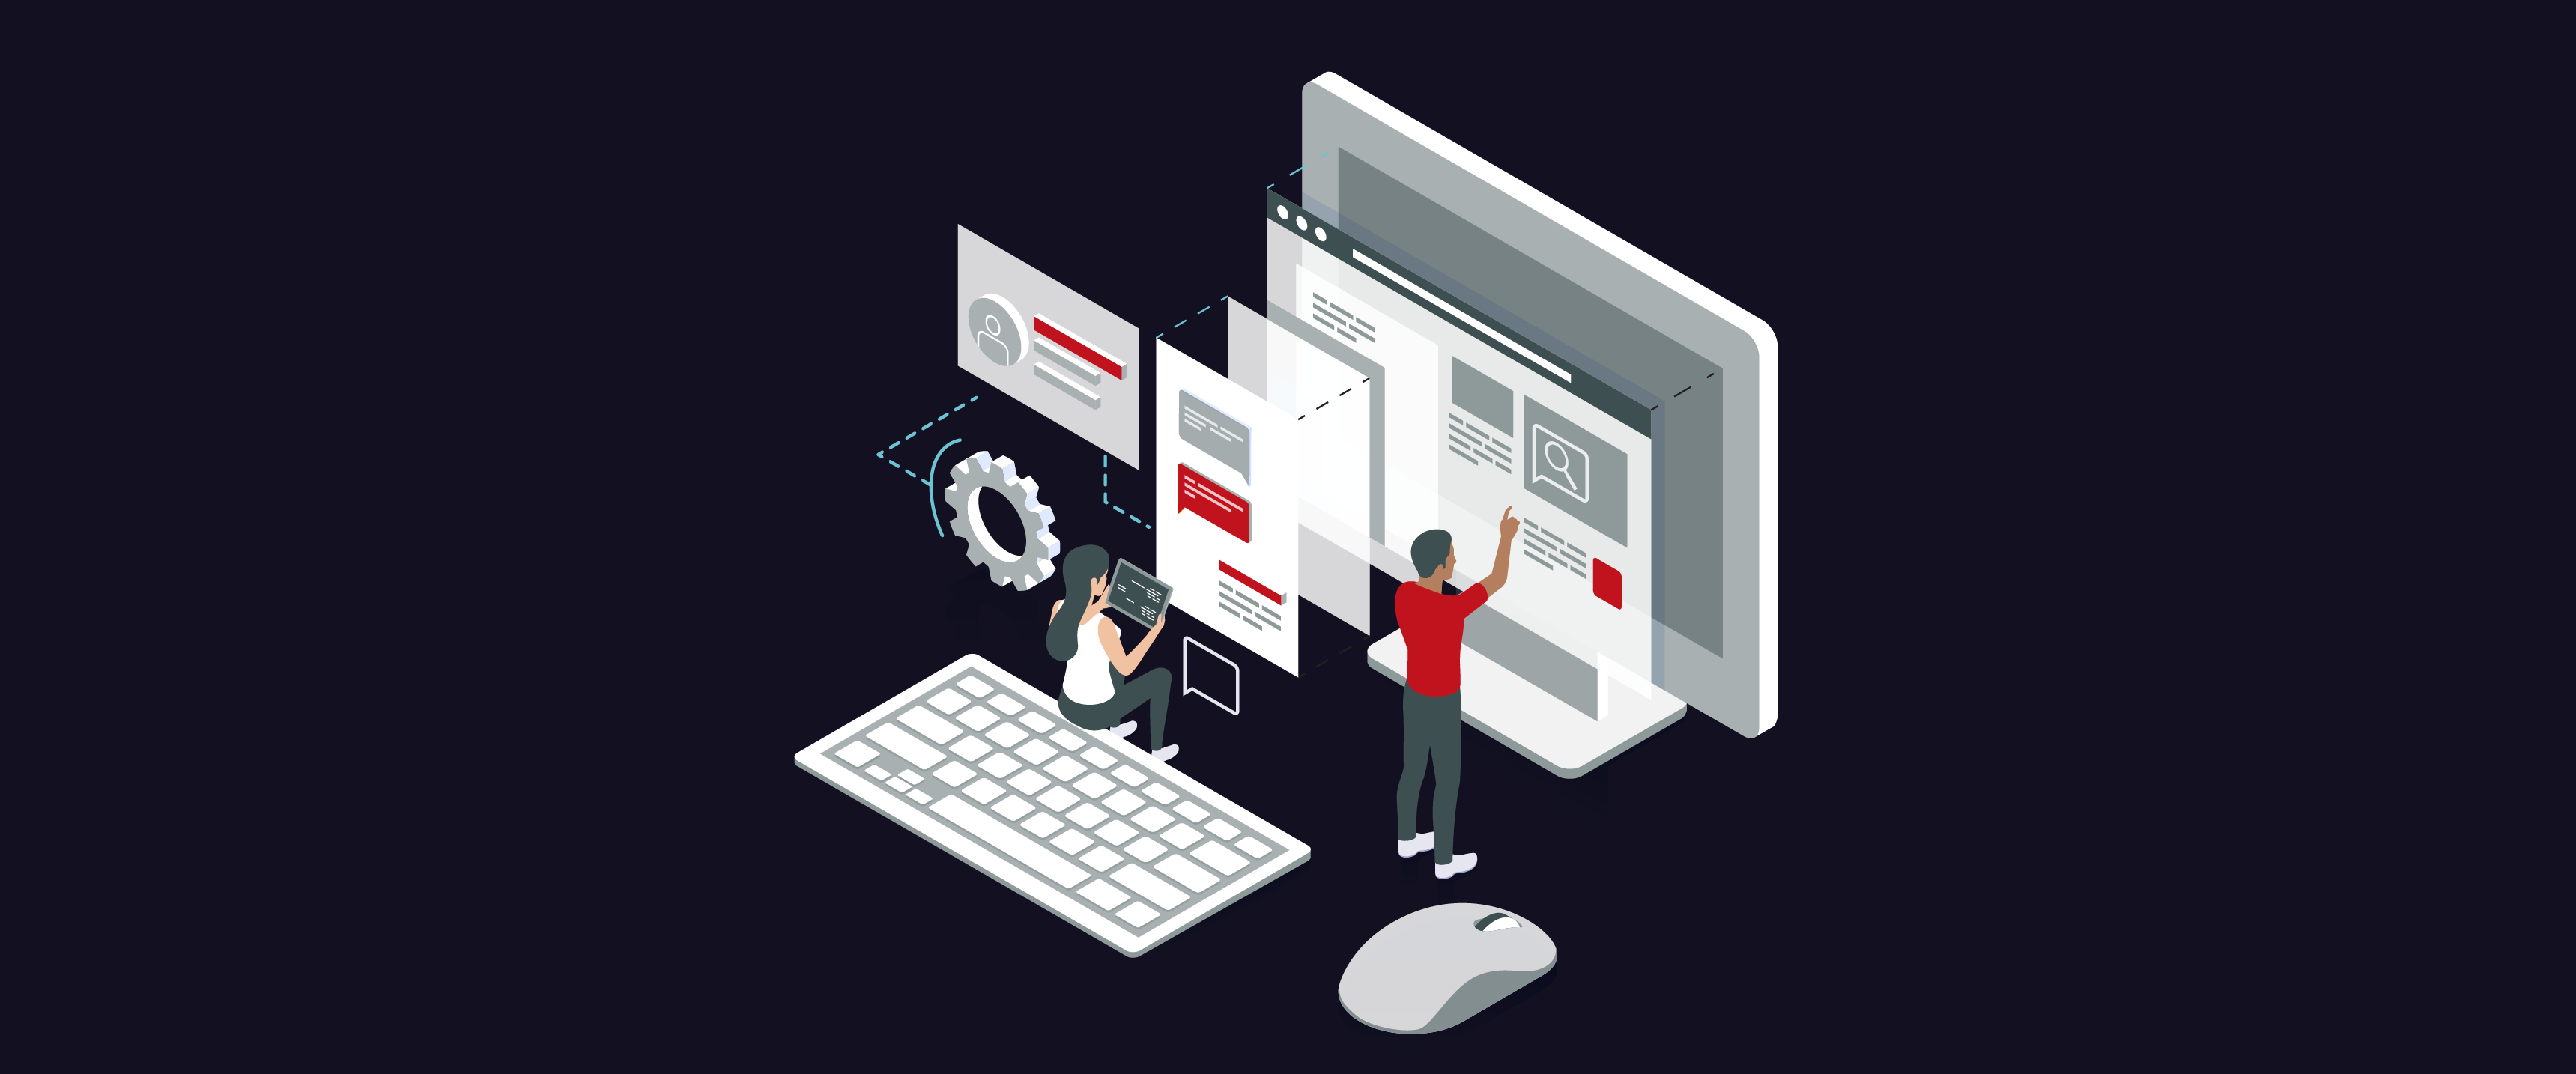 Website Usability Testing: Find the Problem and Solve it